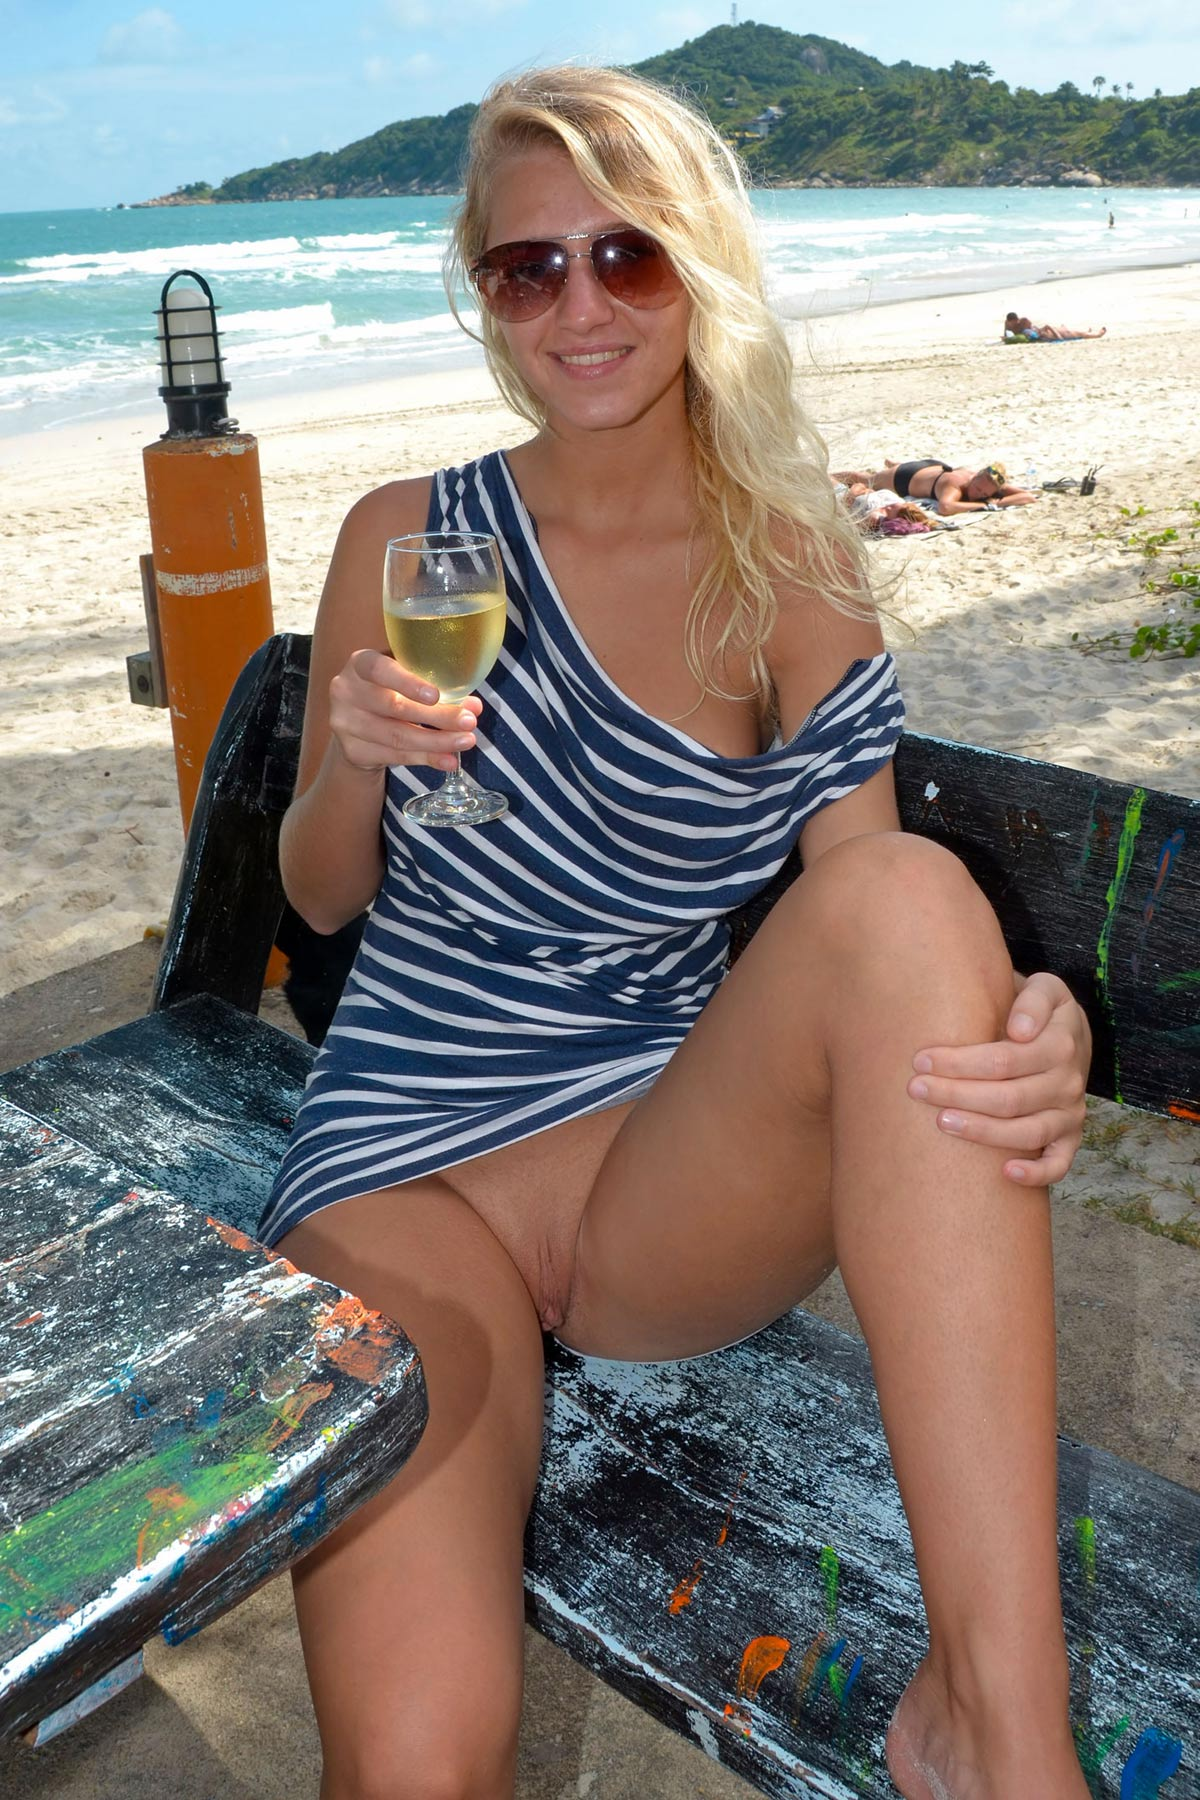 tereza-blonde-thailand-holiday-public-naked-seaside-03